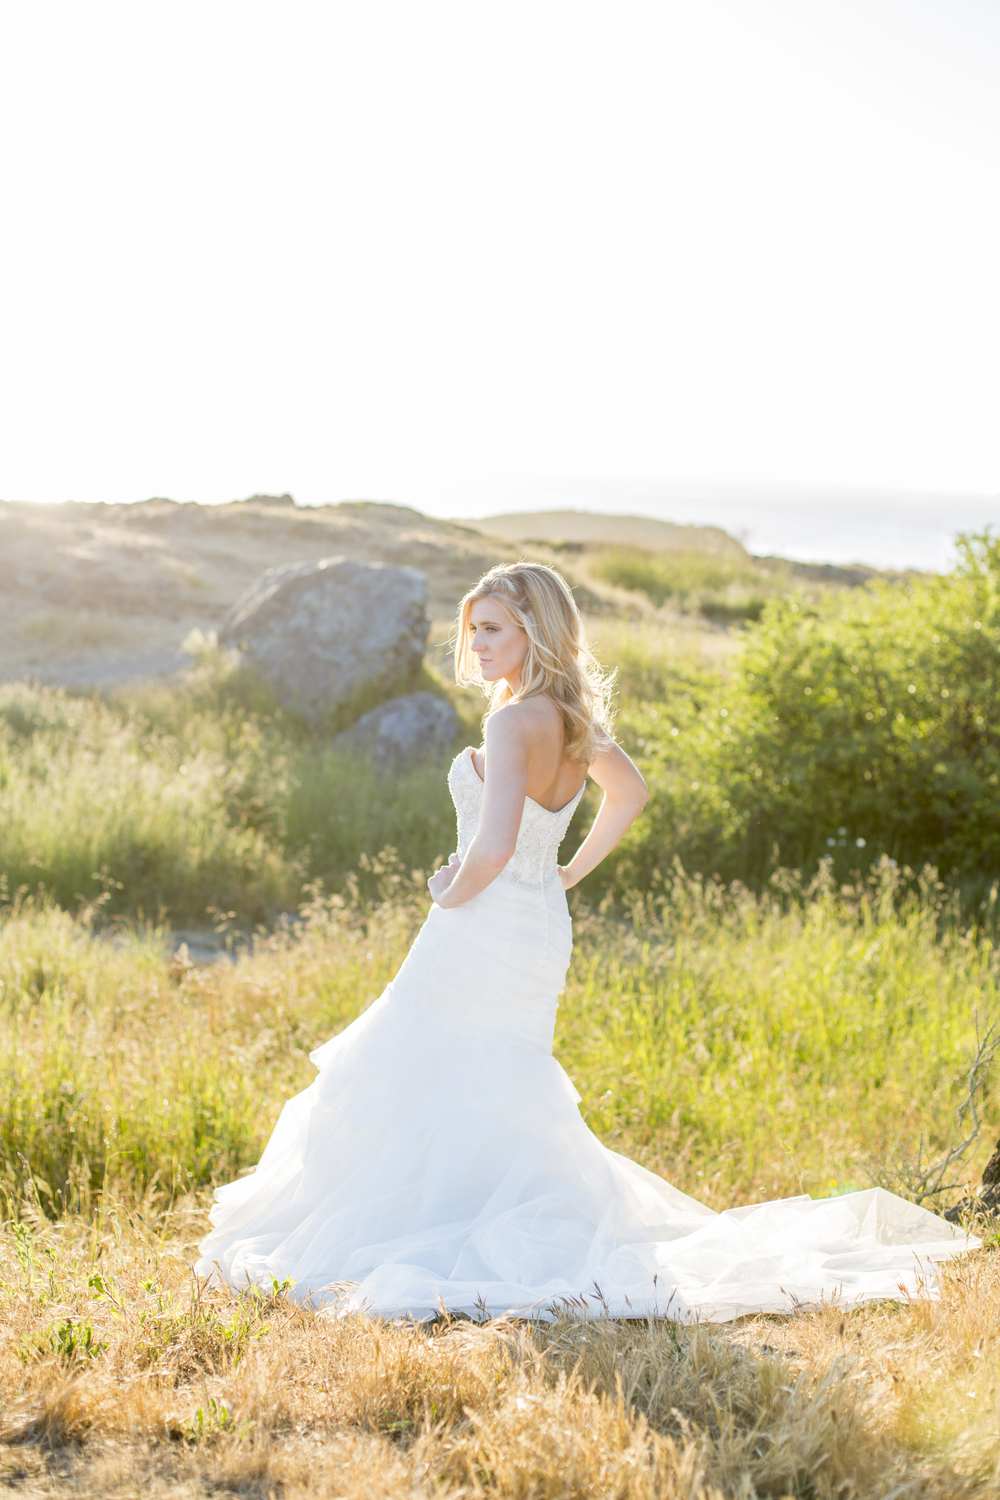 BrookeTaylorStudios_weddingphotographerkayla98.jpg